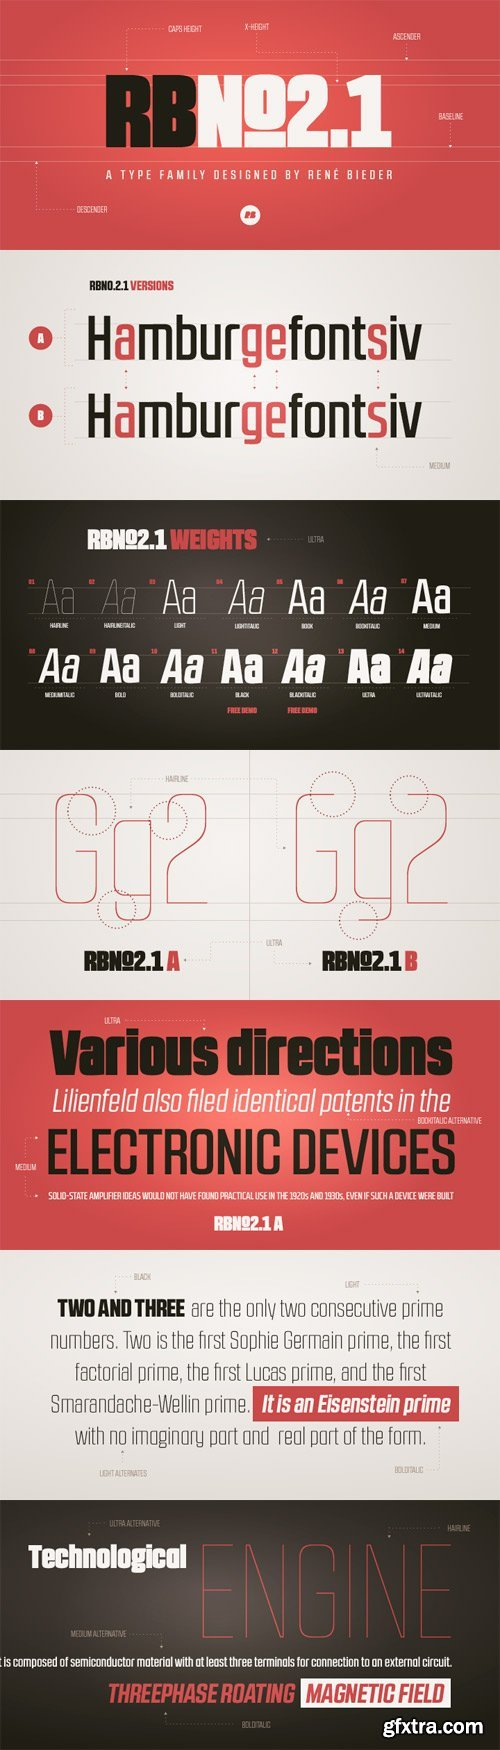 RBNo2.1 Font Family - 28 Fonts for $300